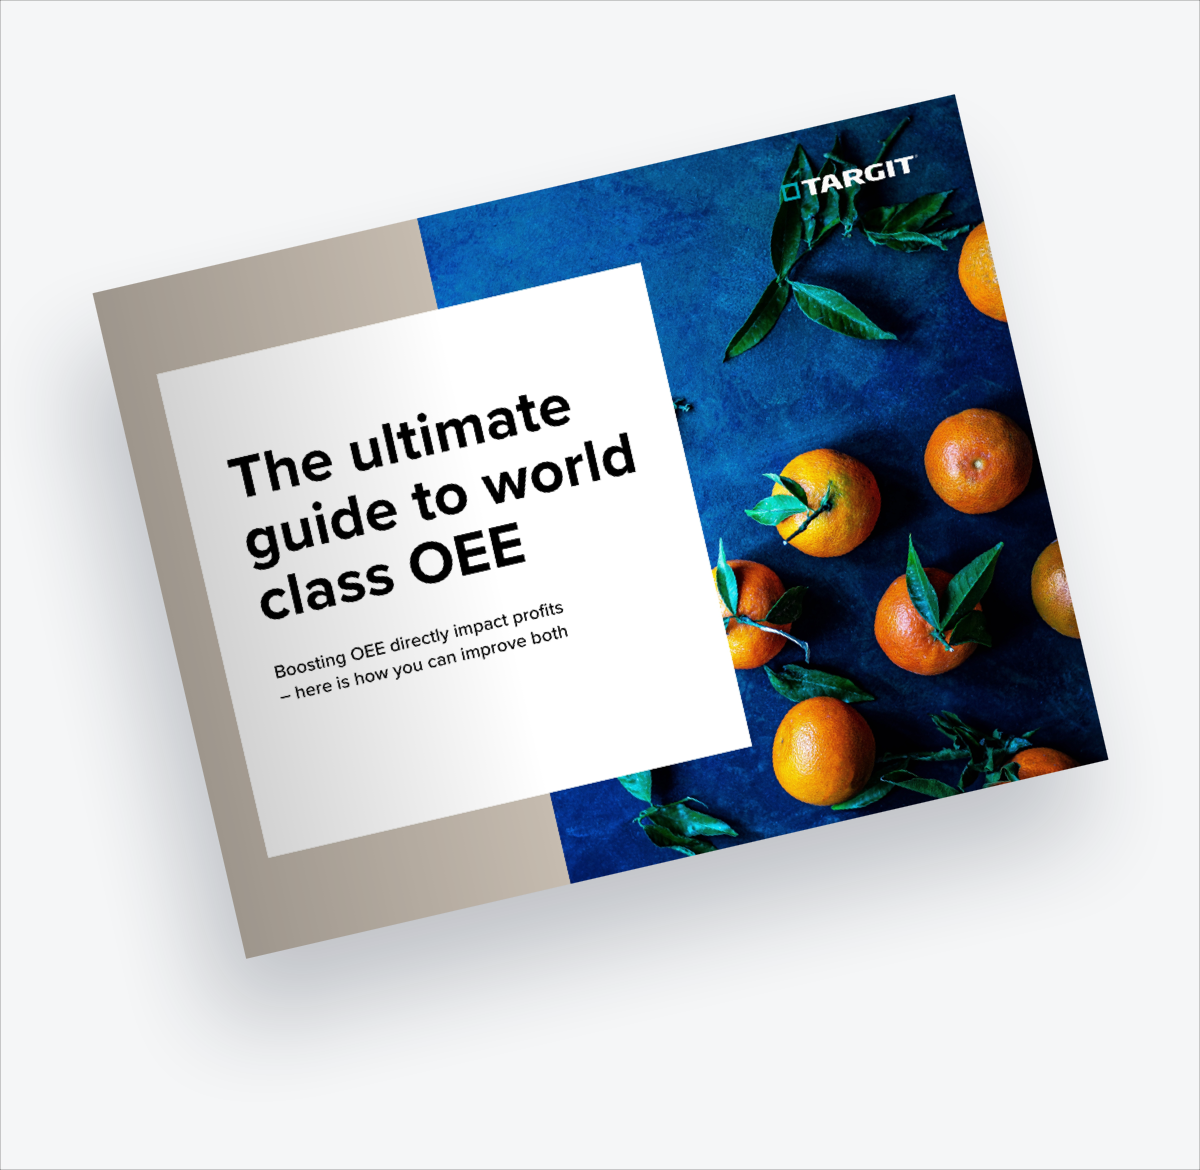 The ultimate guide to world class OEE